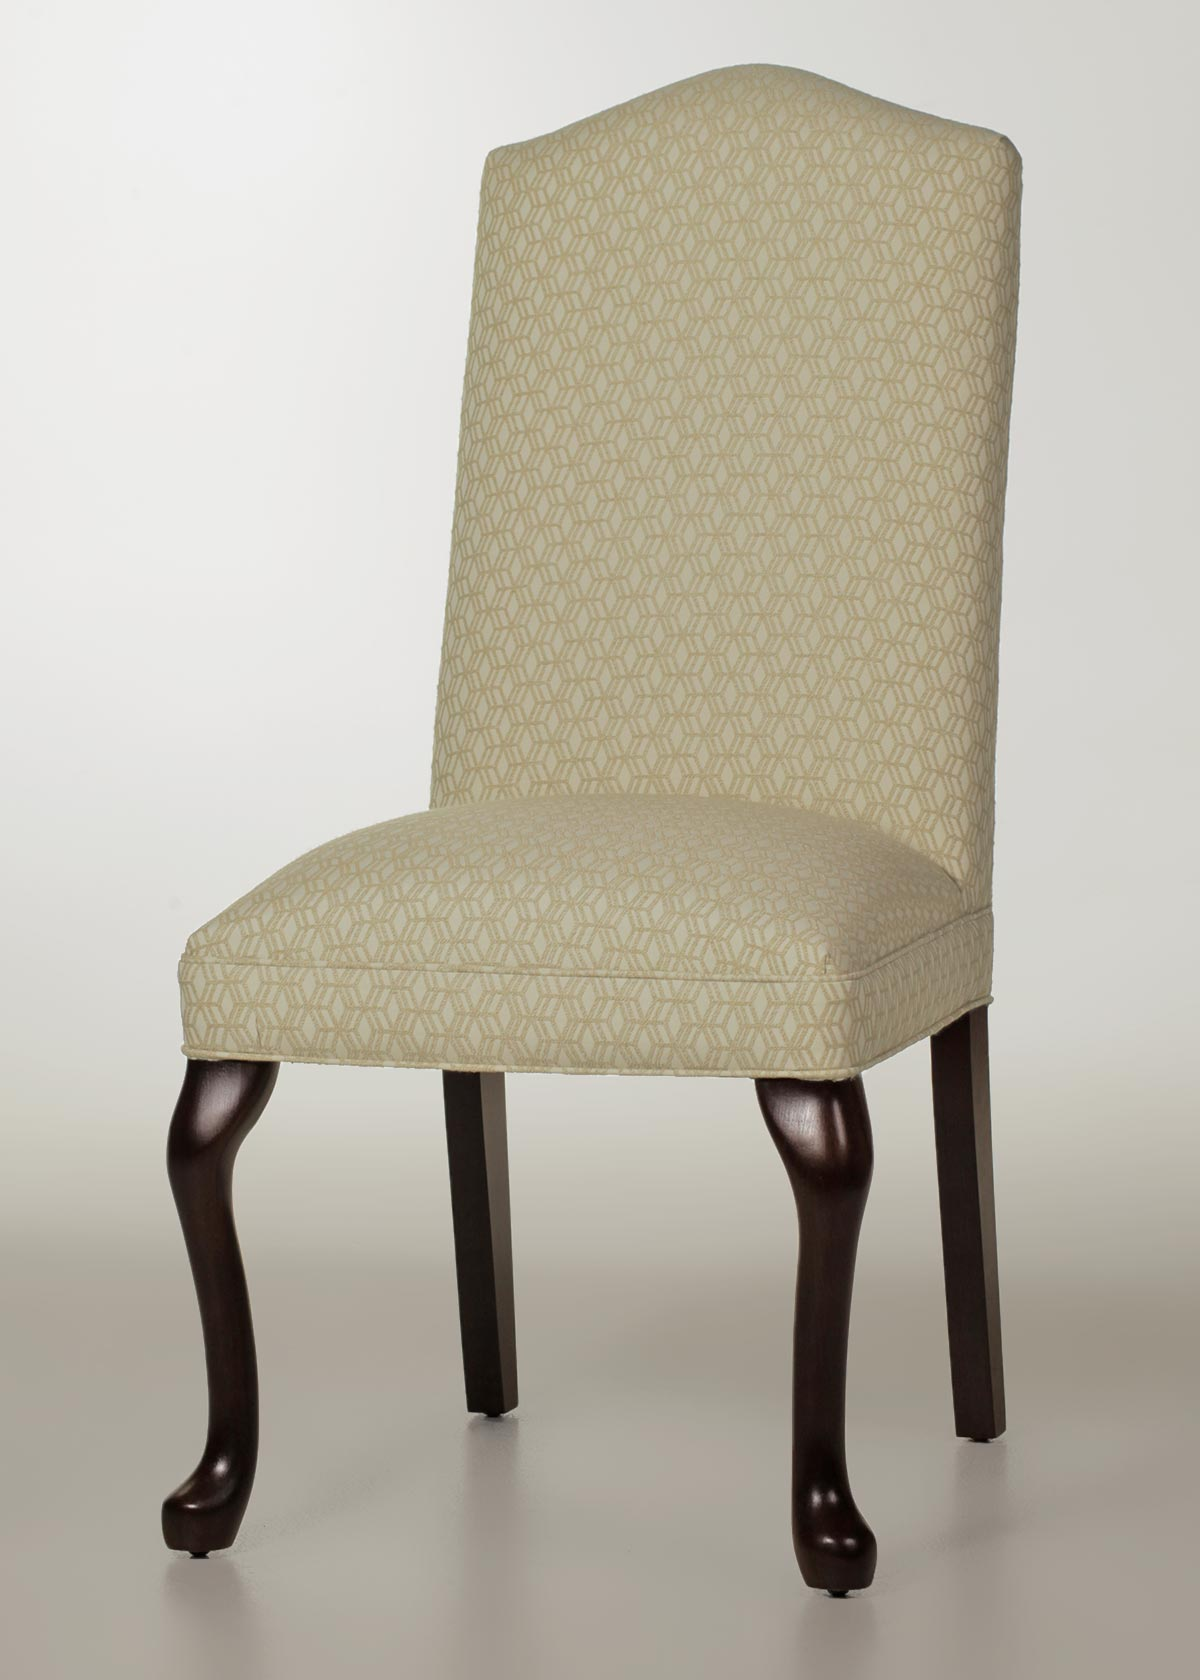 Camel Back Dining Chair With Queen Anne Legs Factory Direct